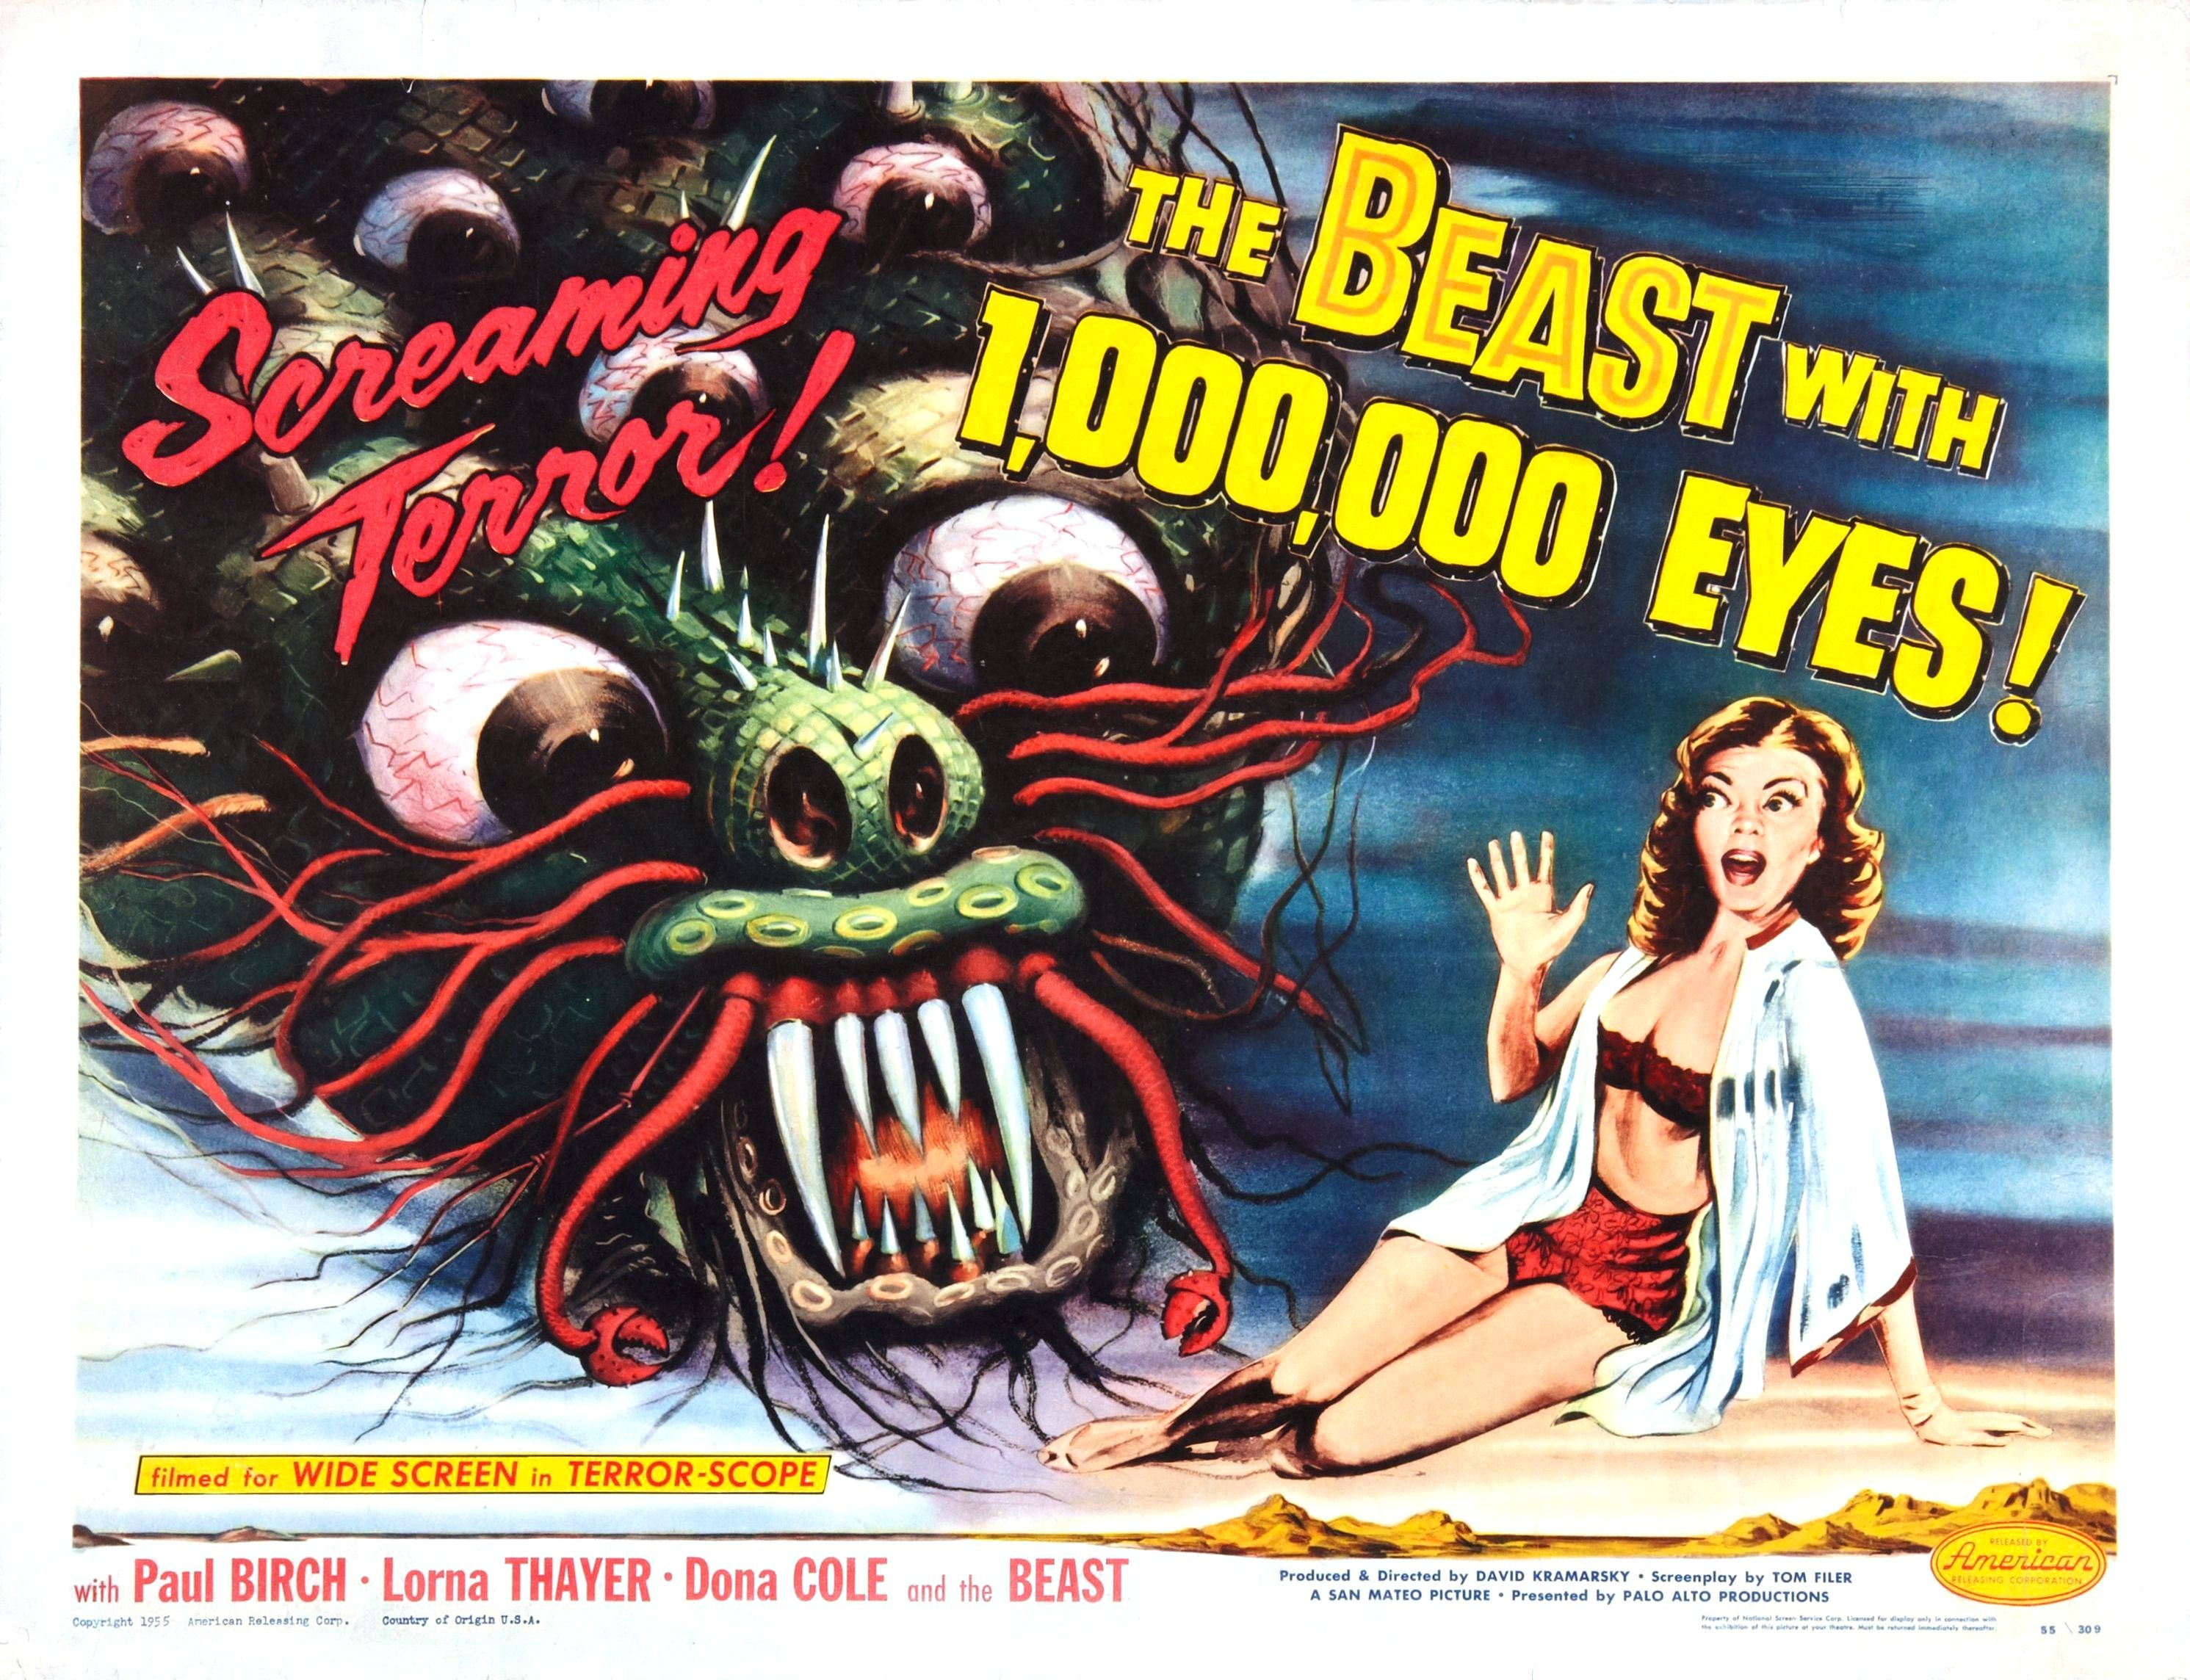 The Beast with 1,000,000 Eyes (1955)